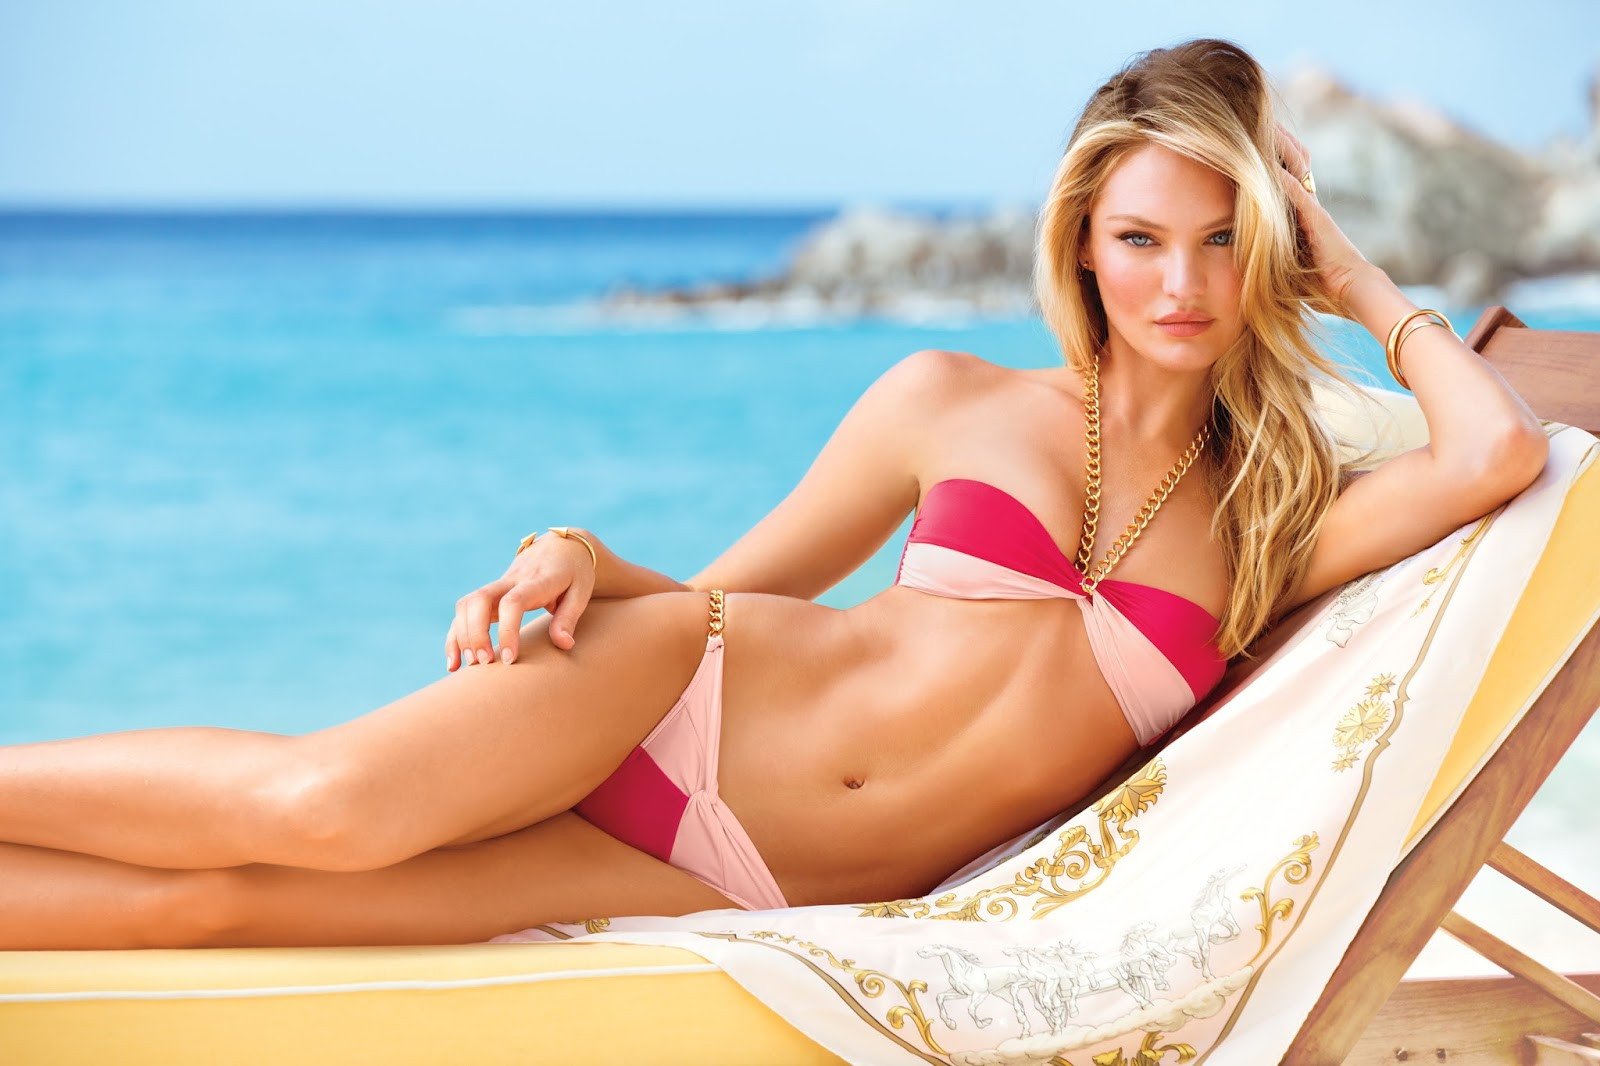 Hot Walls Pics: Candice Swanepoel Profile And New Hot Pictures 2013